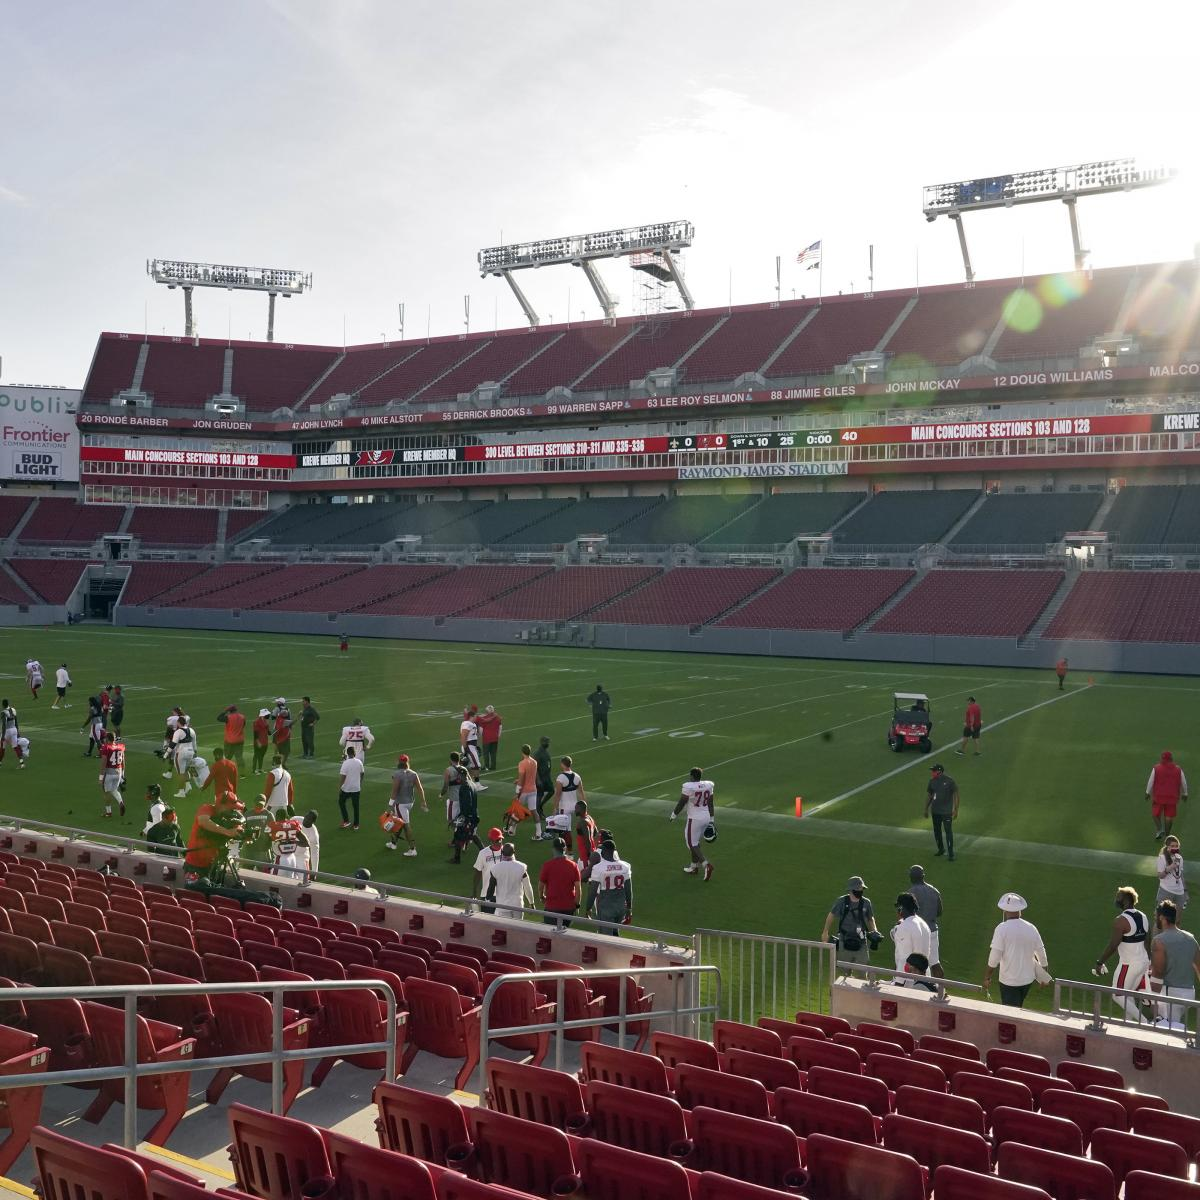 Buccaneers Games at Raymond James Stadium Could Allow Fans at 25% Capacity